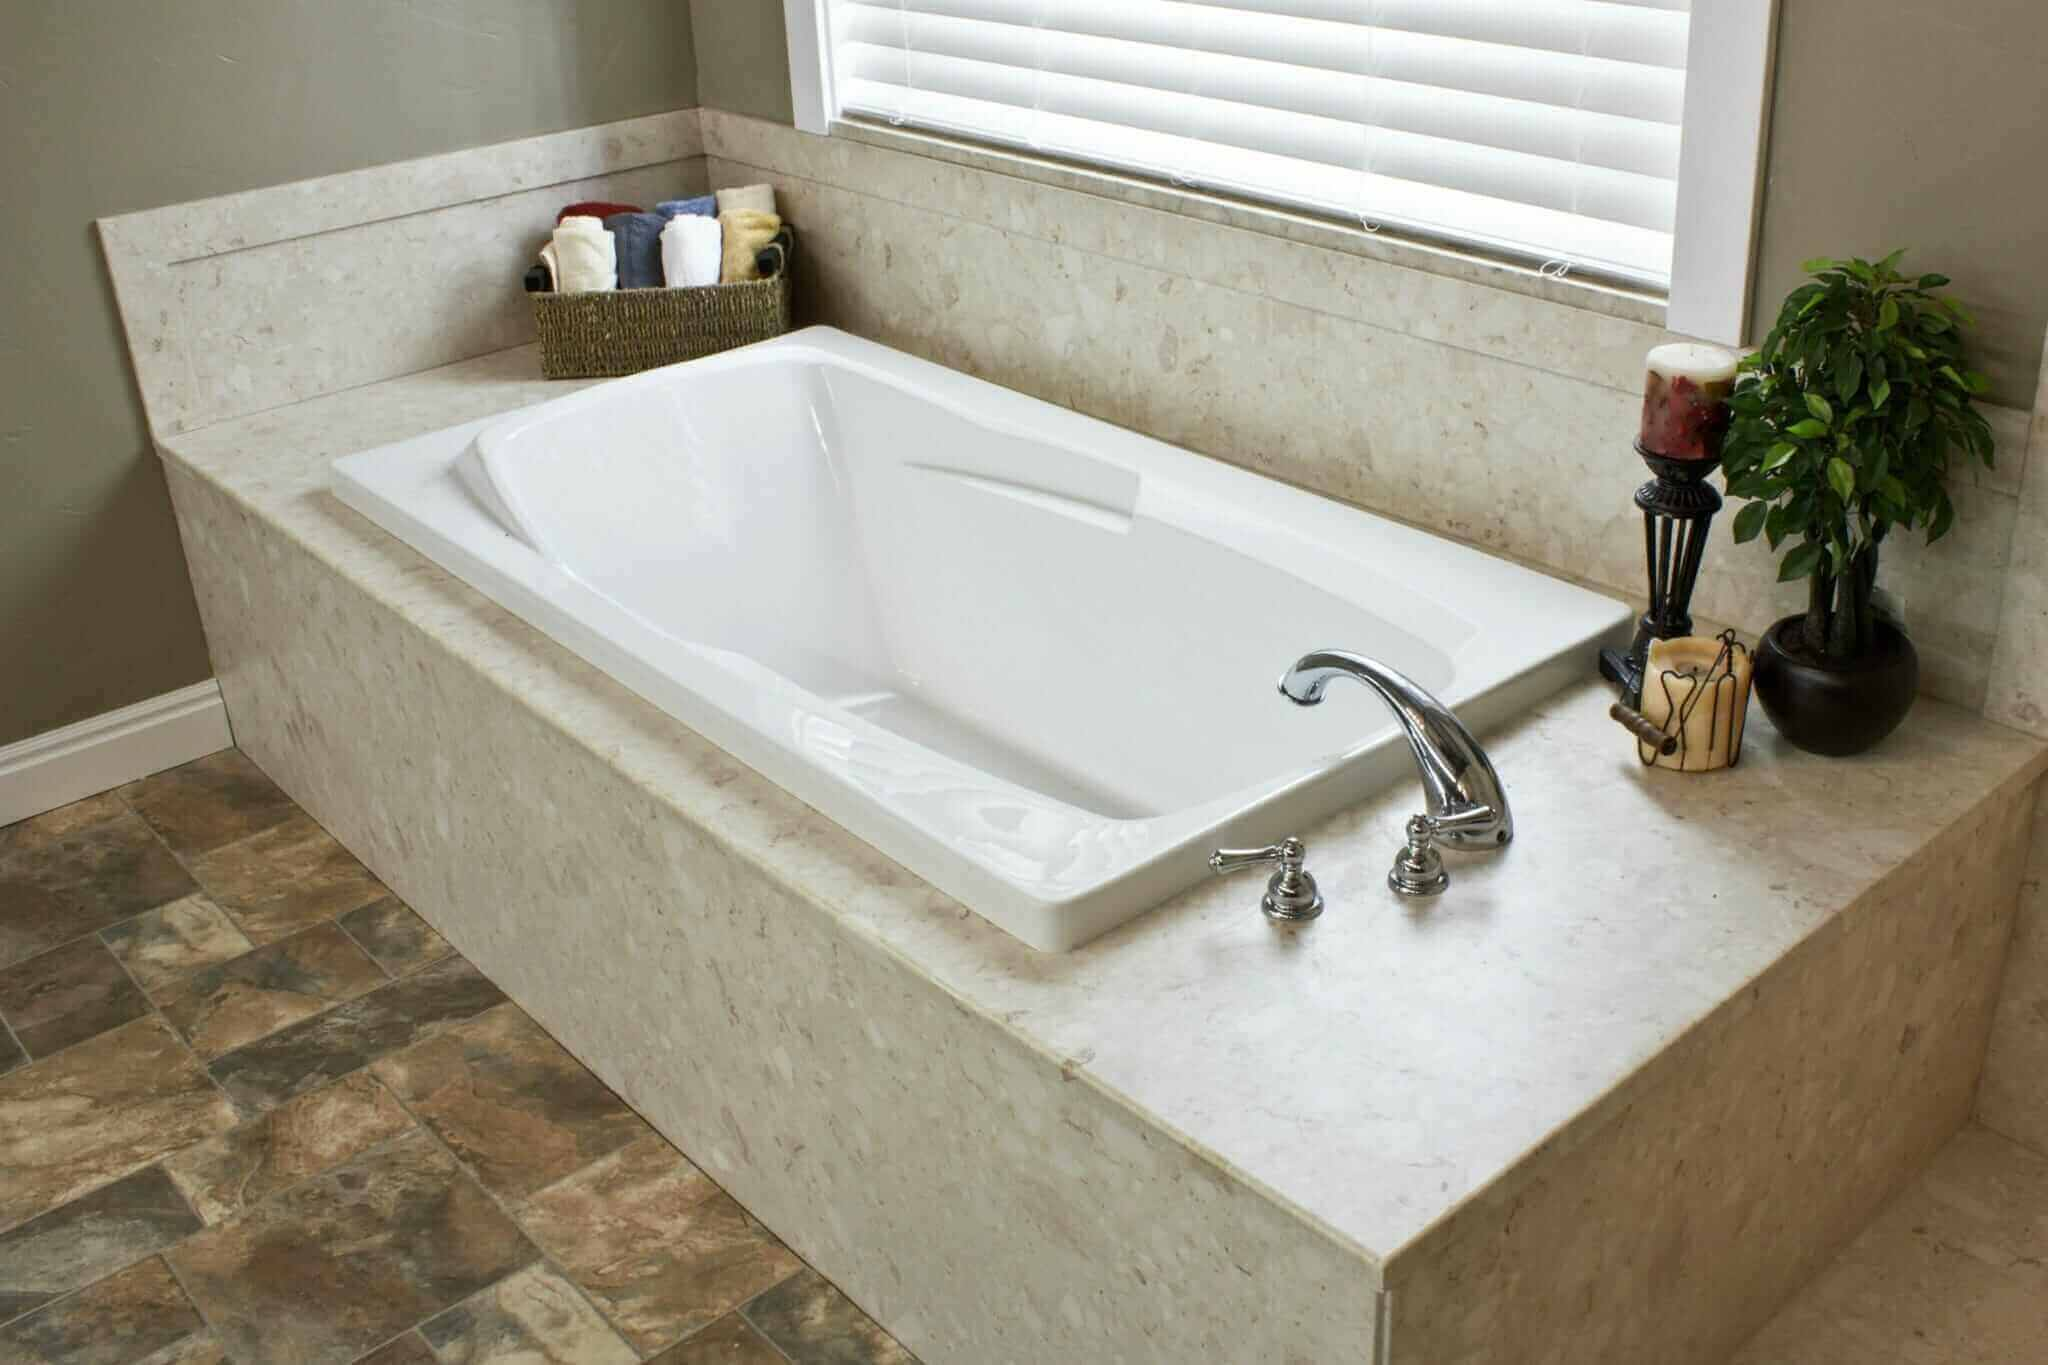 Bathtub design for your unique style and needs for Bathroom soaking tub ideas